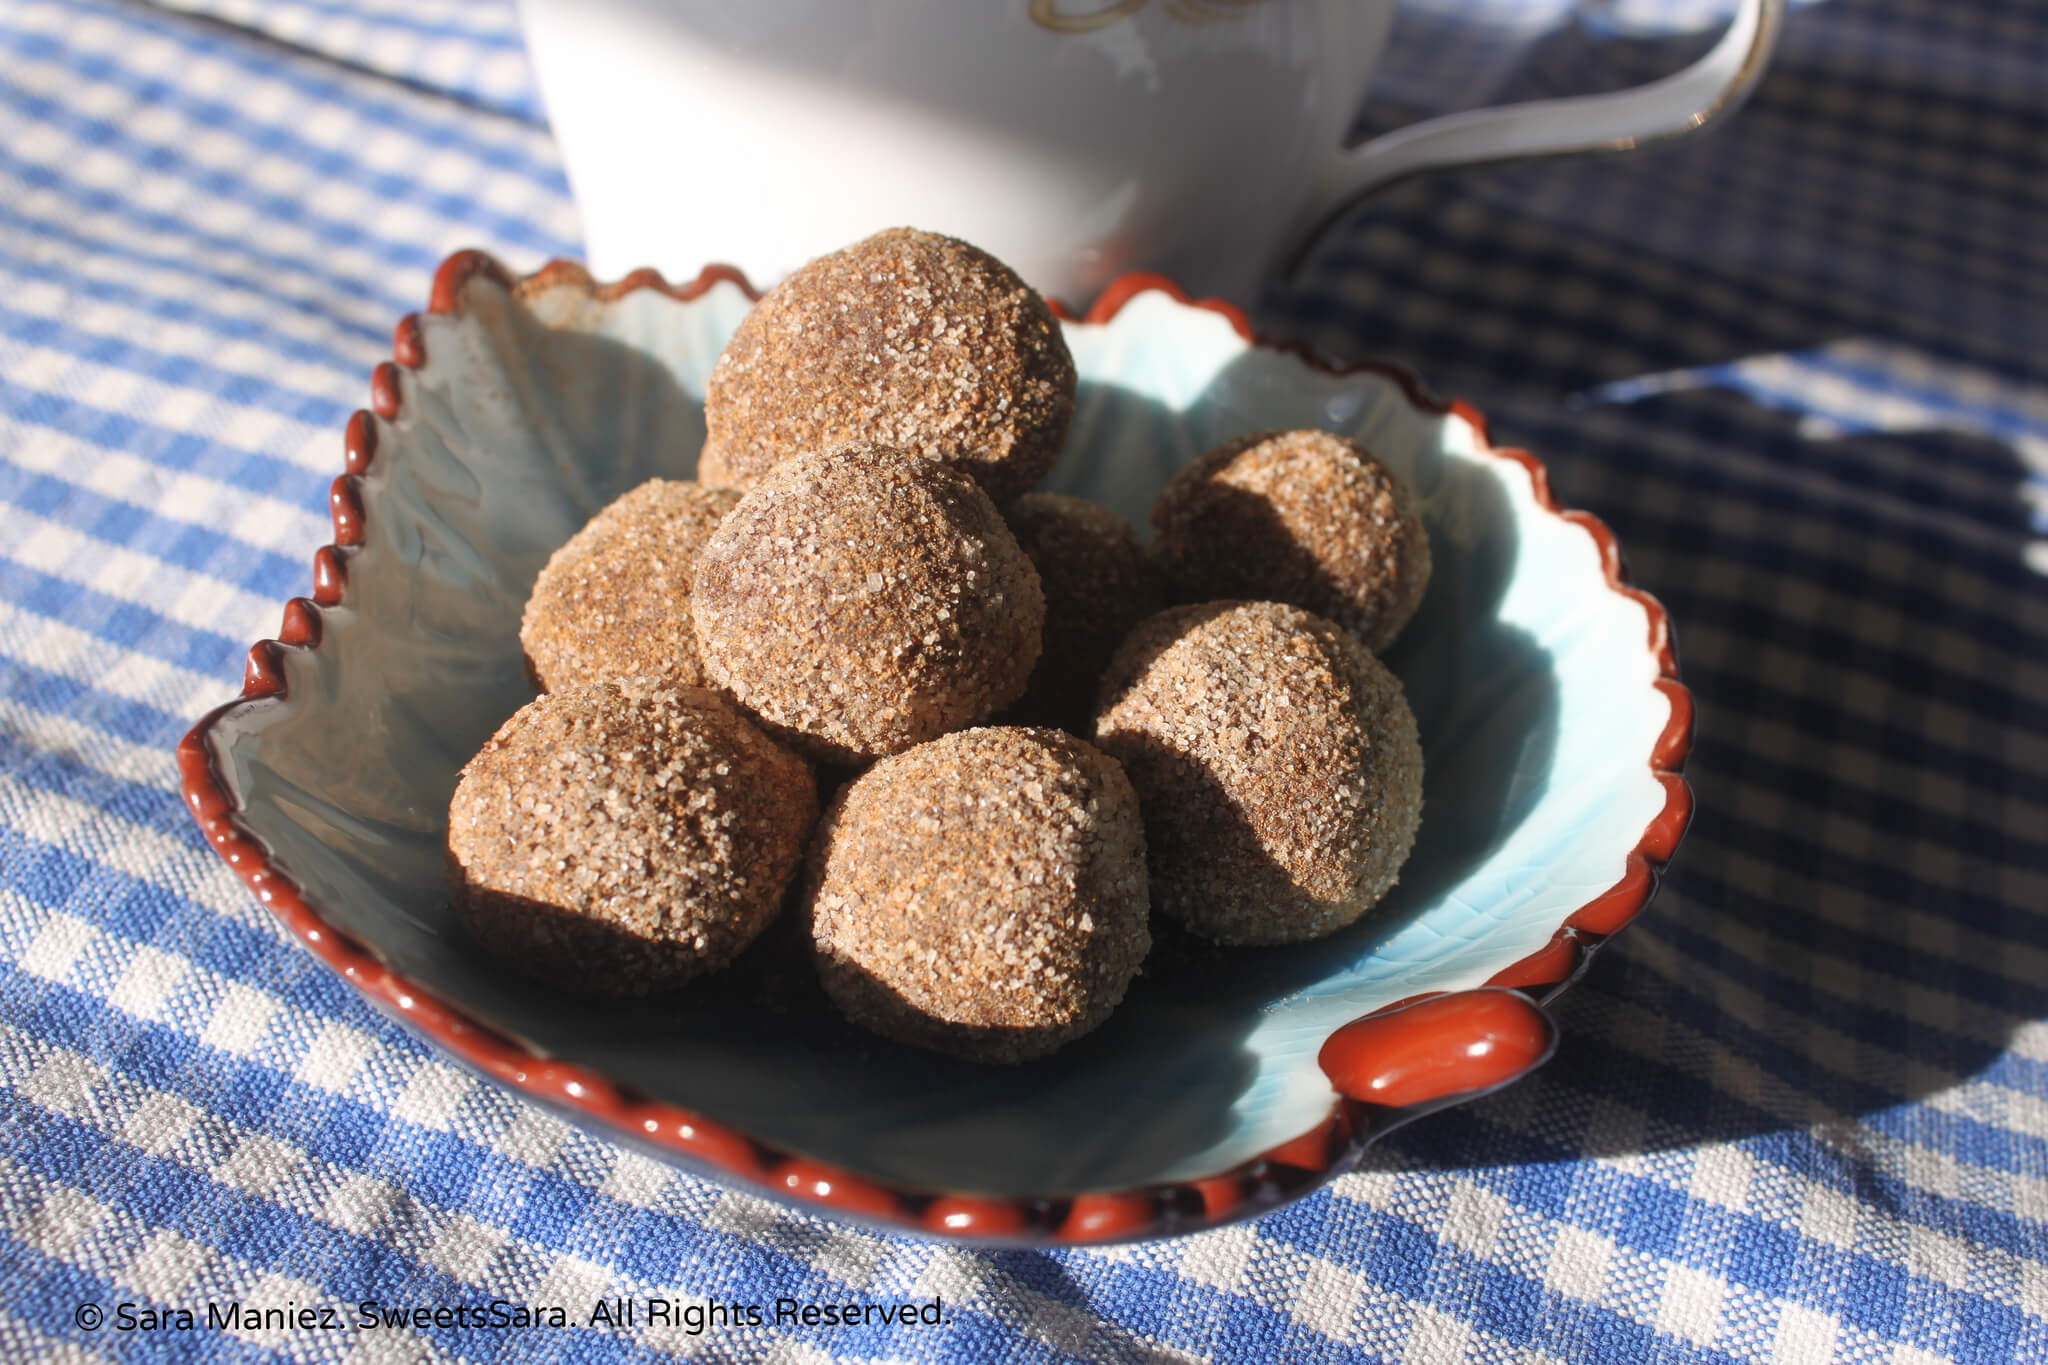 Mocha Cinnamon Truffles are excellent with coffee